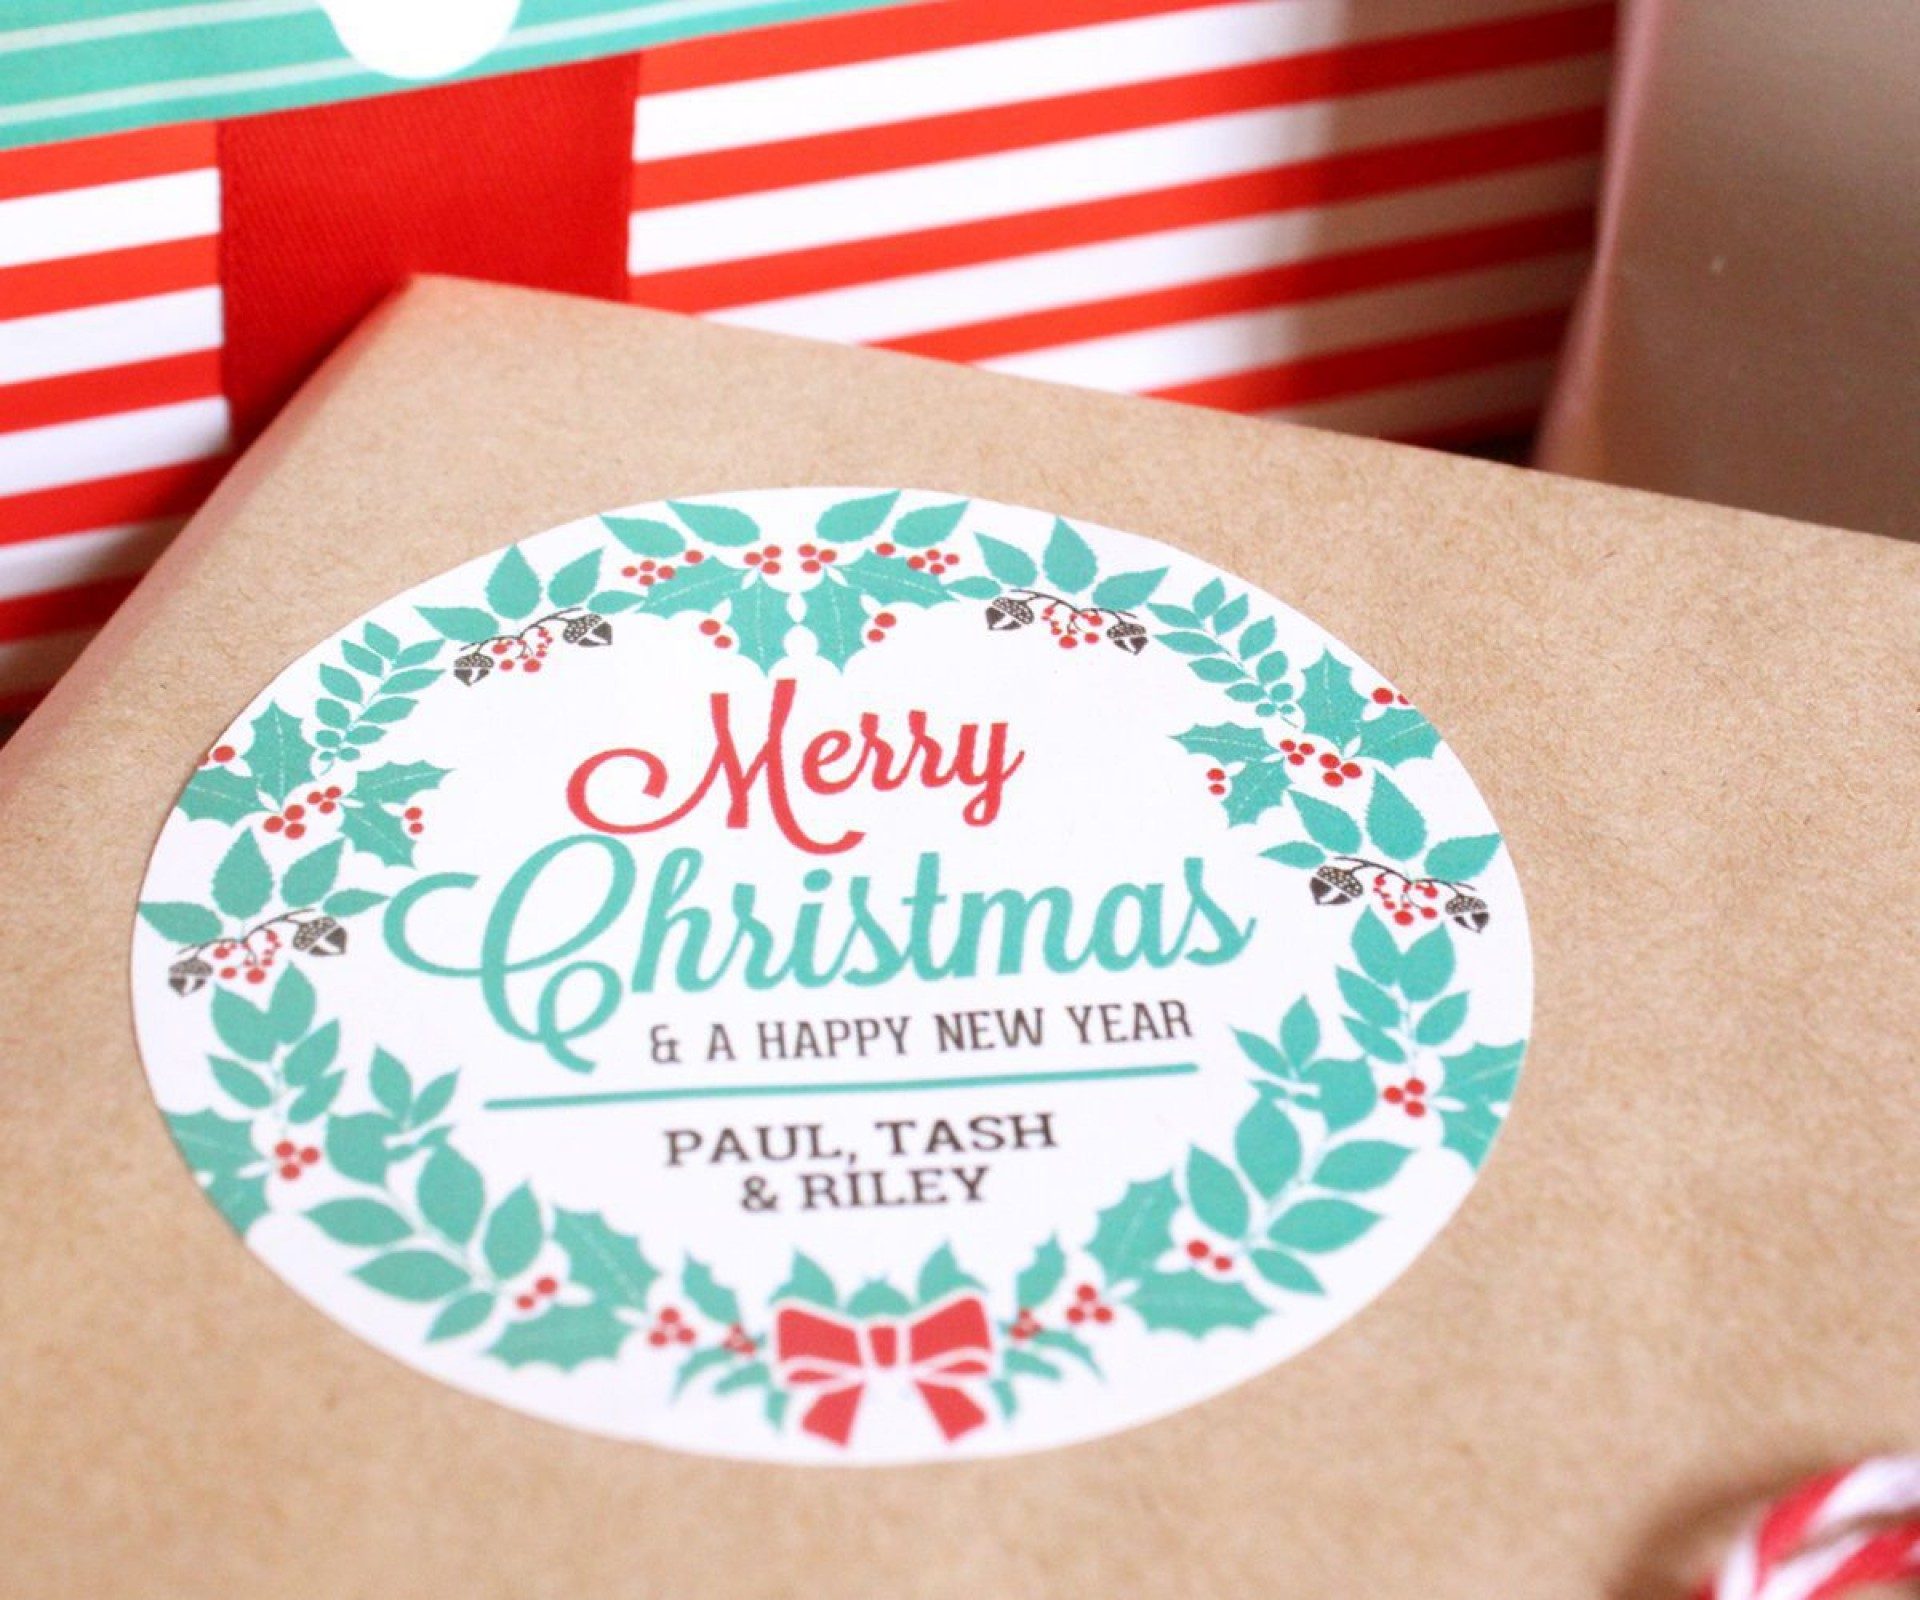 009 Staggering Free Addres Label Template Christma Image  Christmas Return 30 Per Sheet Microsoft Word1920